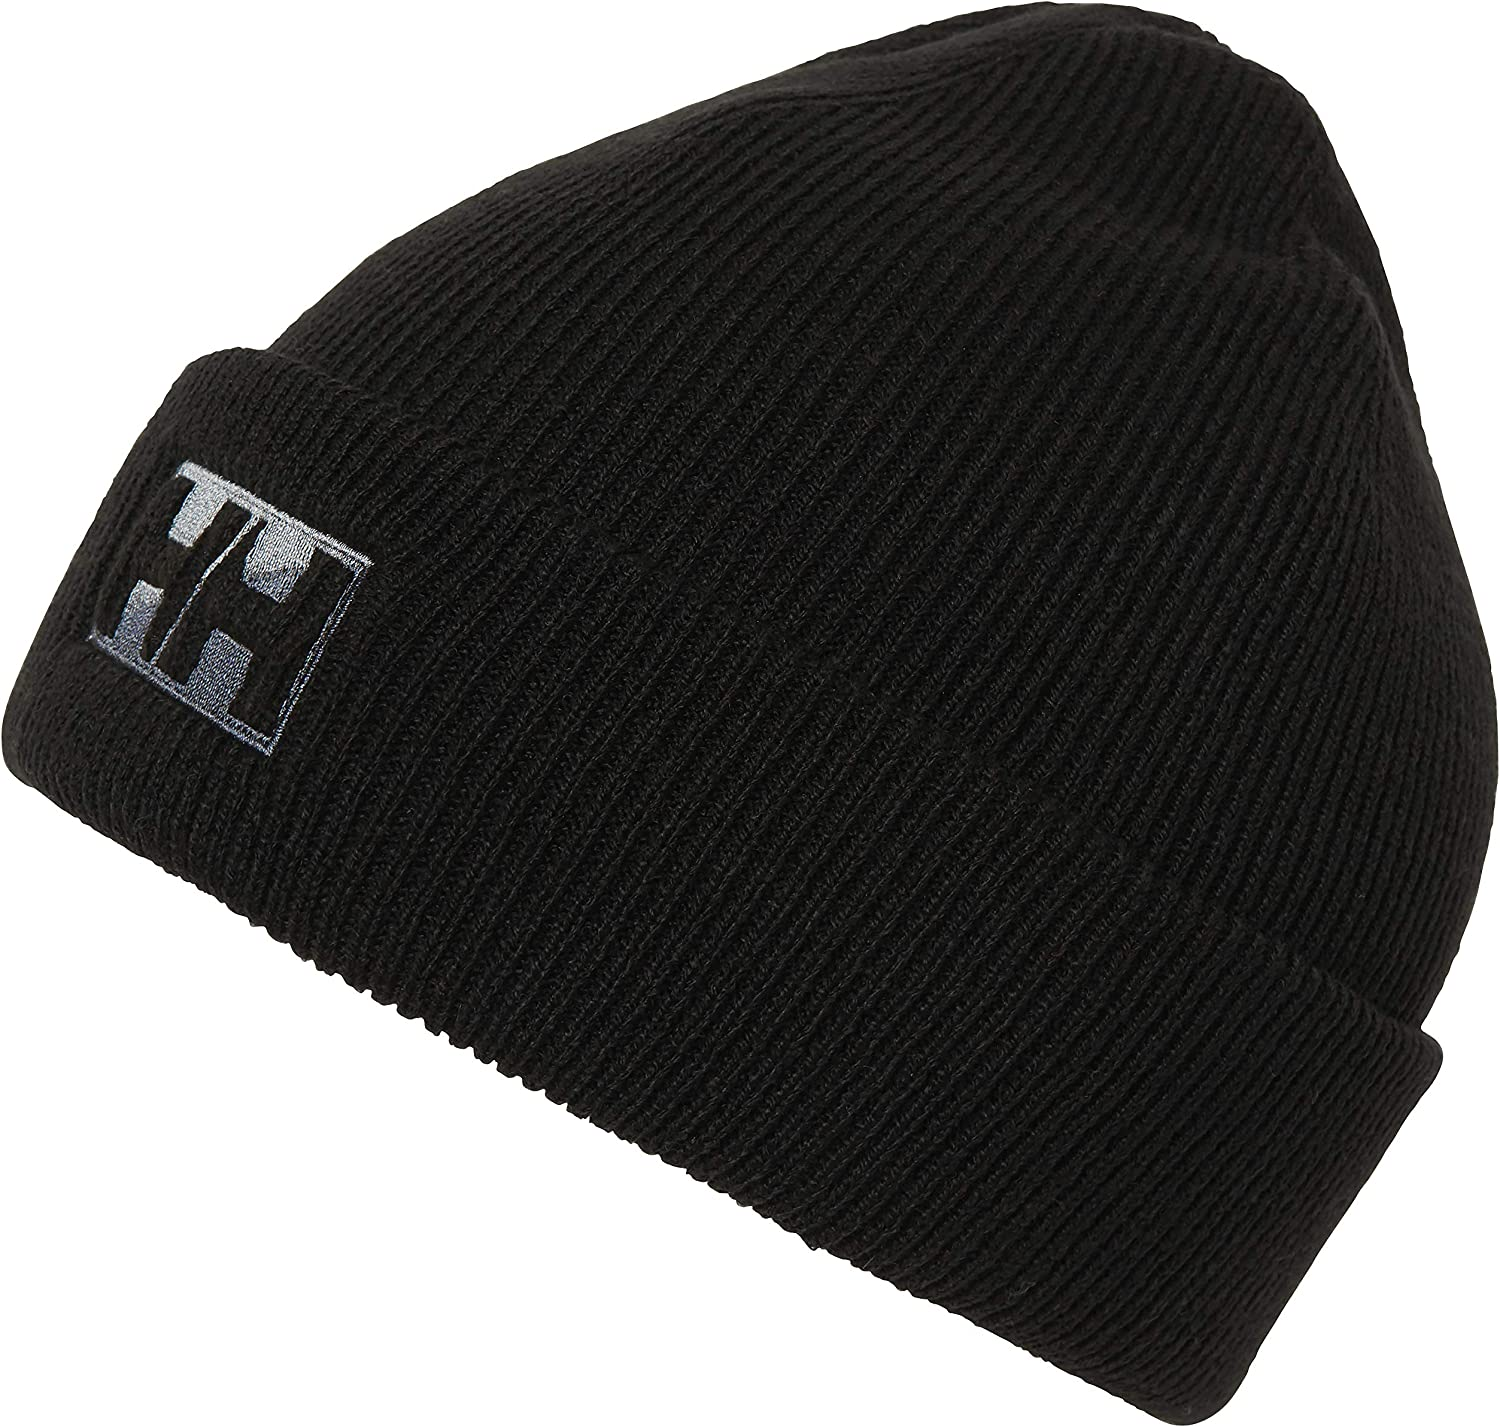 Helly-Hansen Unisex-Adult Sea Gear Beanie Some reservation Waffle Industry No. 1 Knit